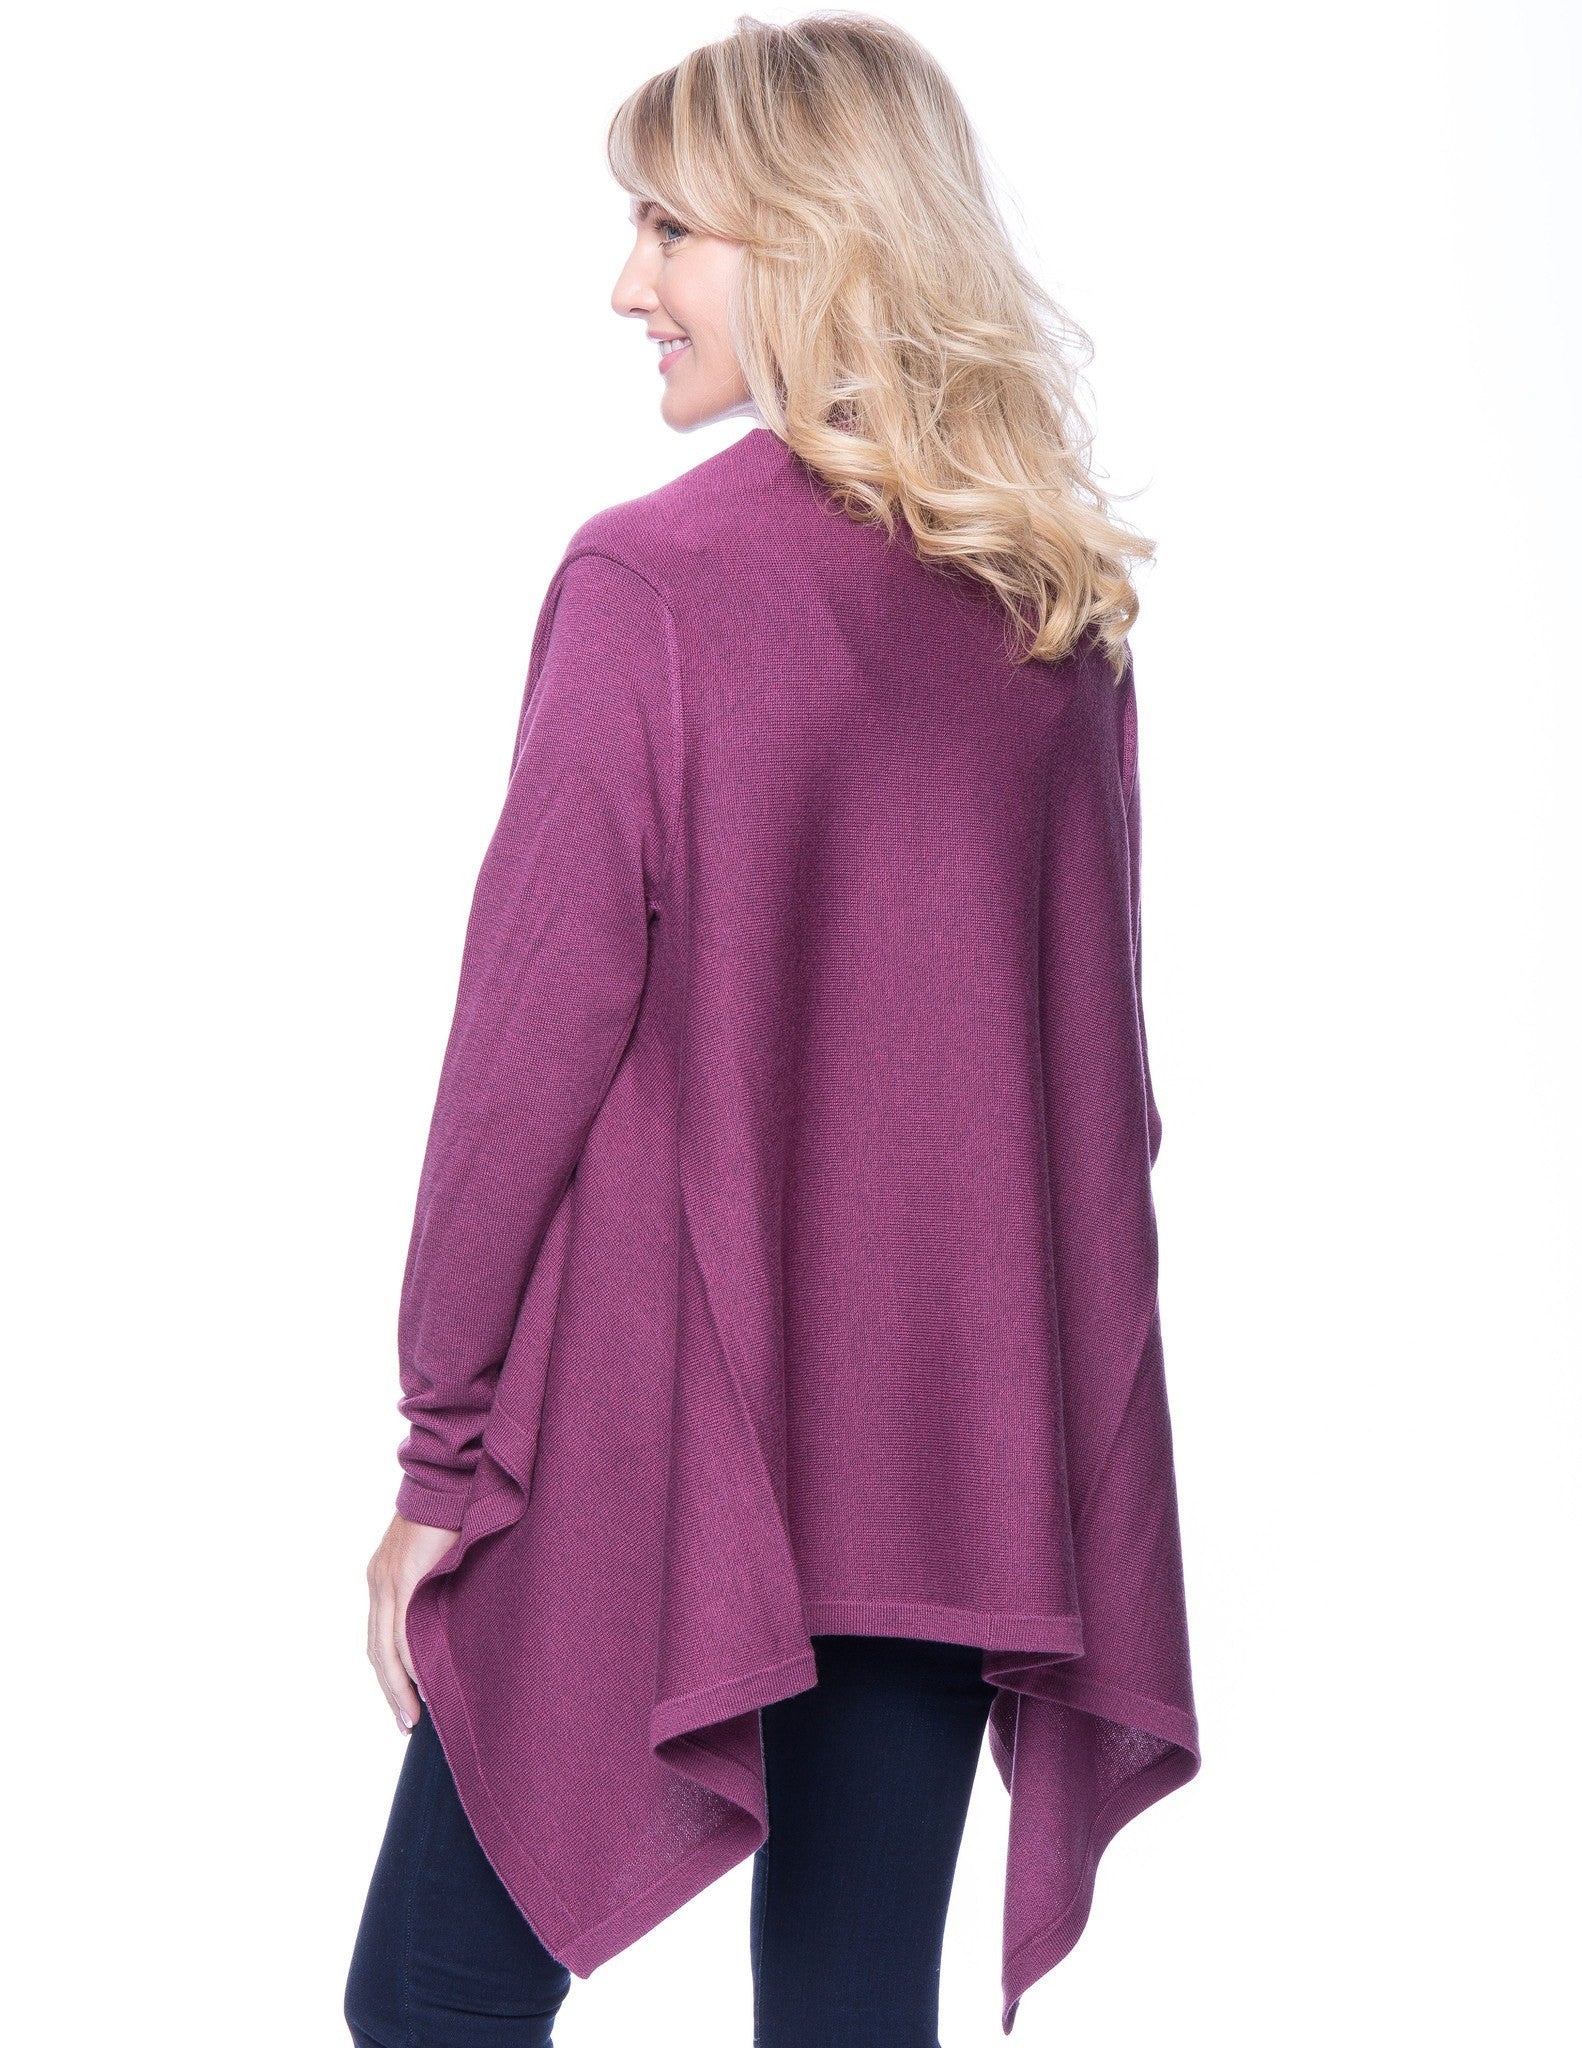 Tocco Reale Women's Wool Blend Open Cardigan - Plum